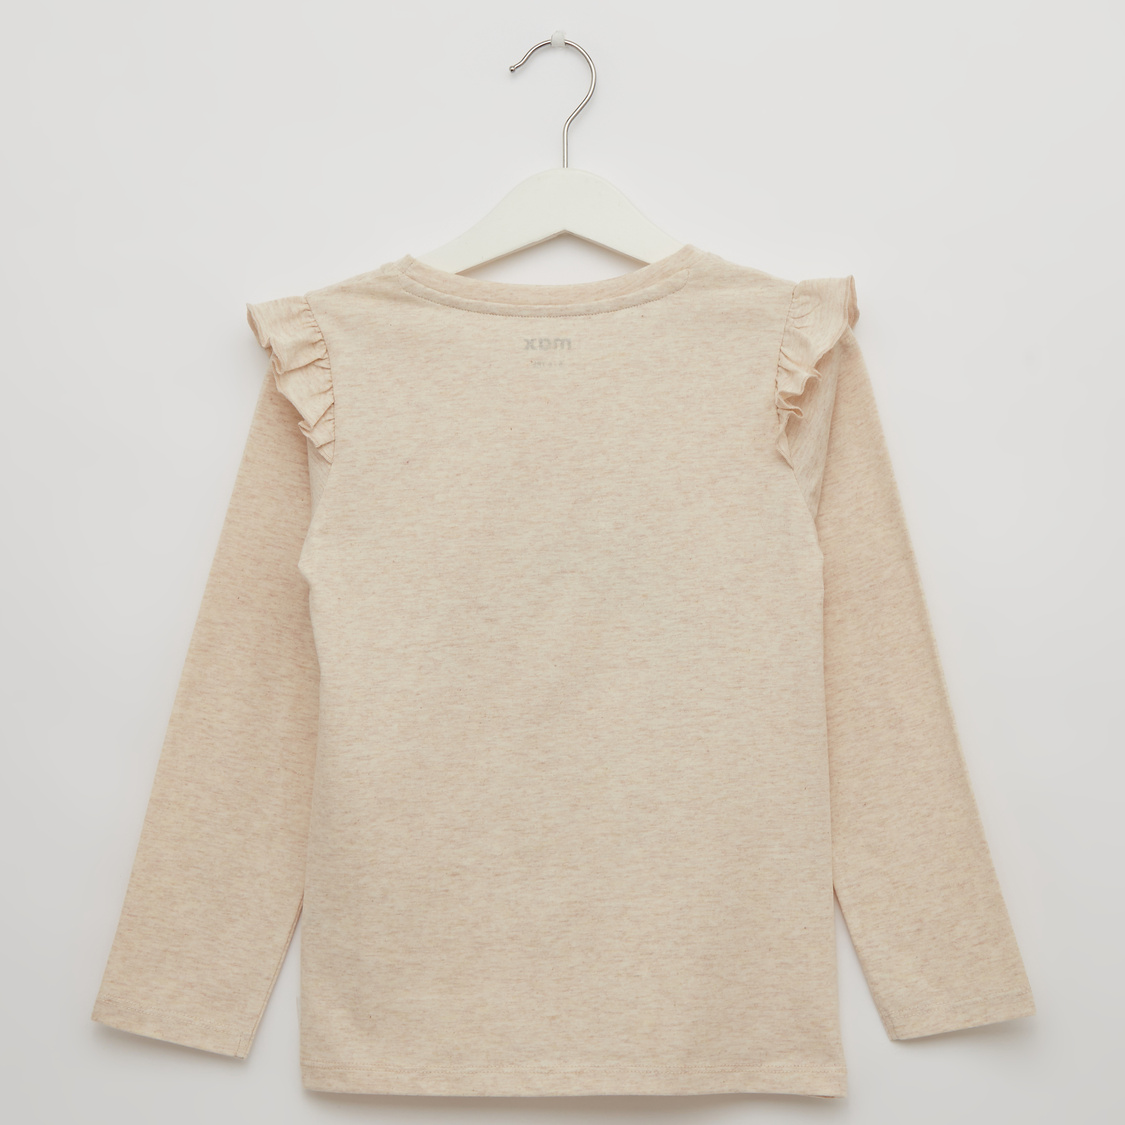 Printed Round Neck T-shirt with Long Sleeves and Frill Accent